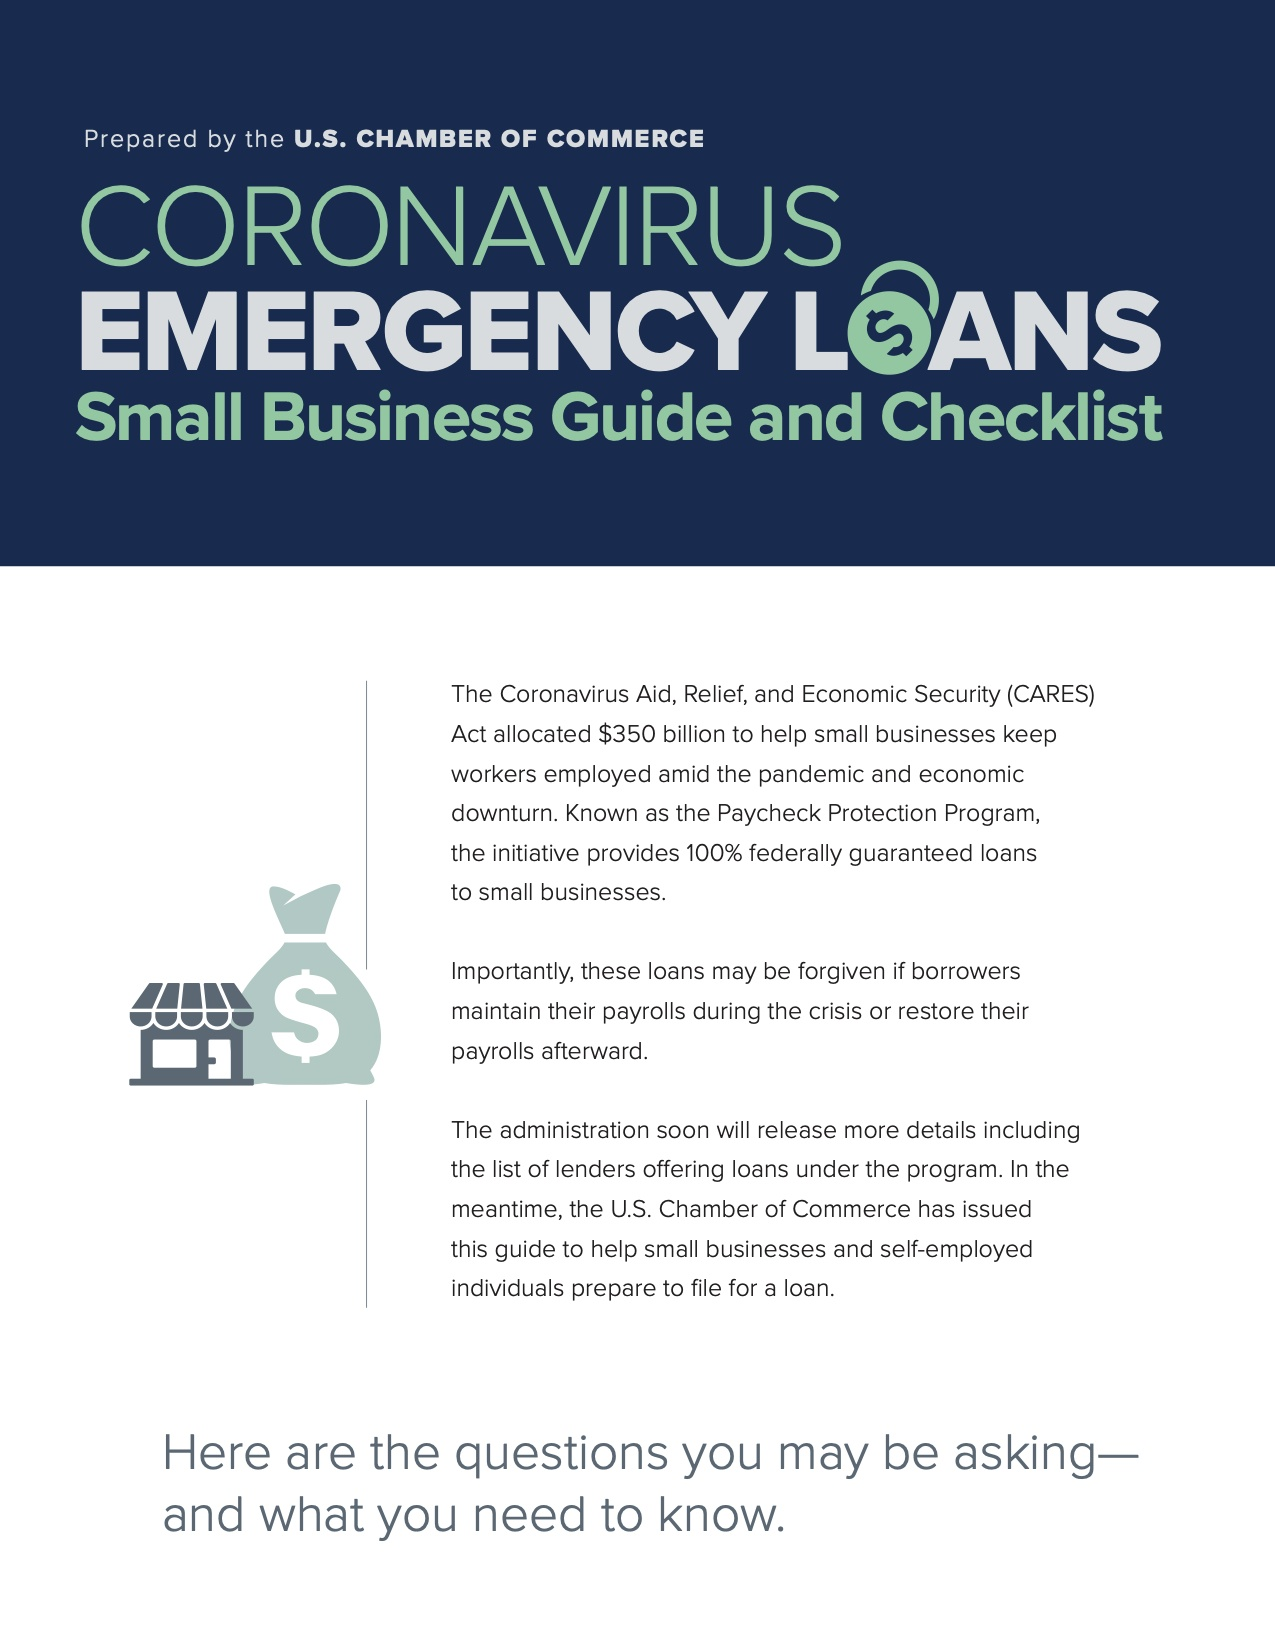 Small Business Guide for CARES - CORONAVIRUS EMERGENCY LOANS